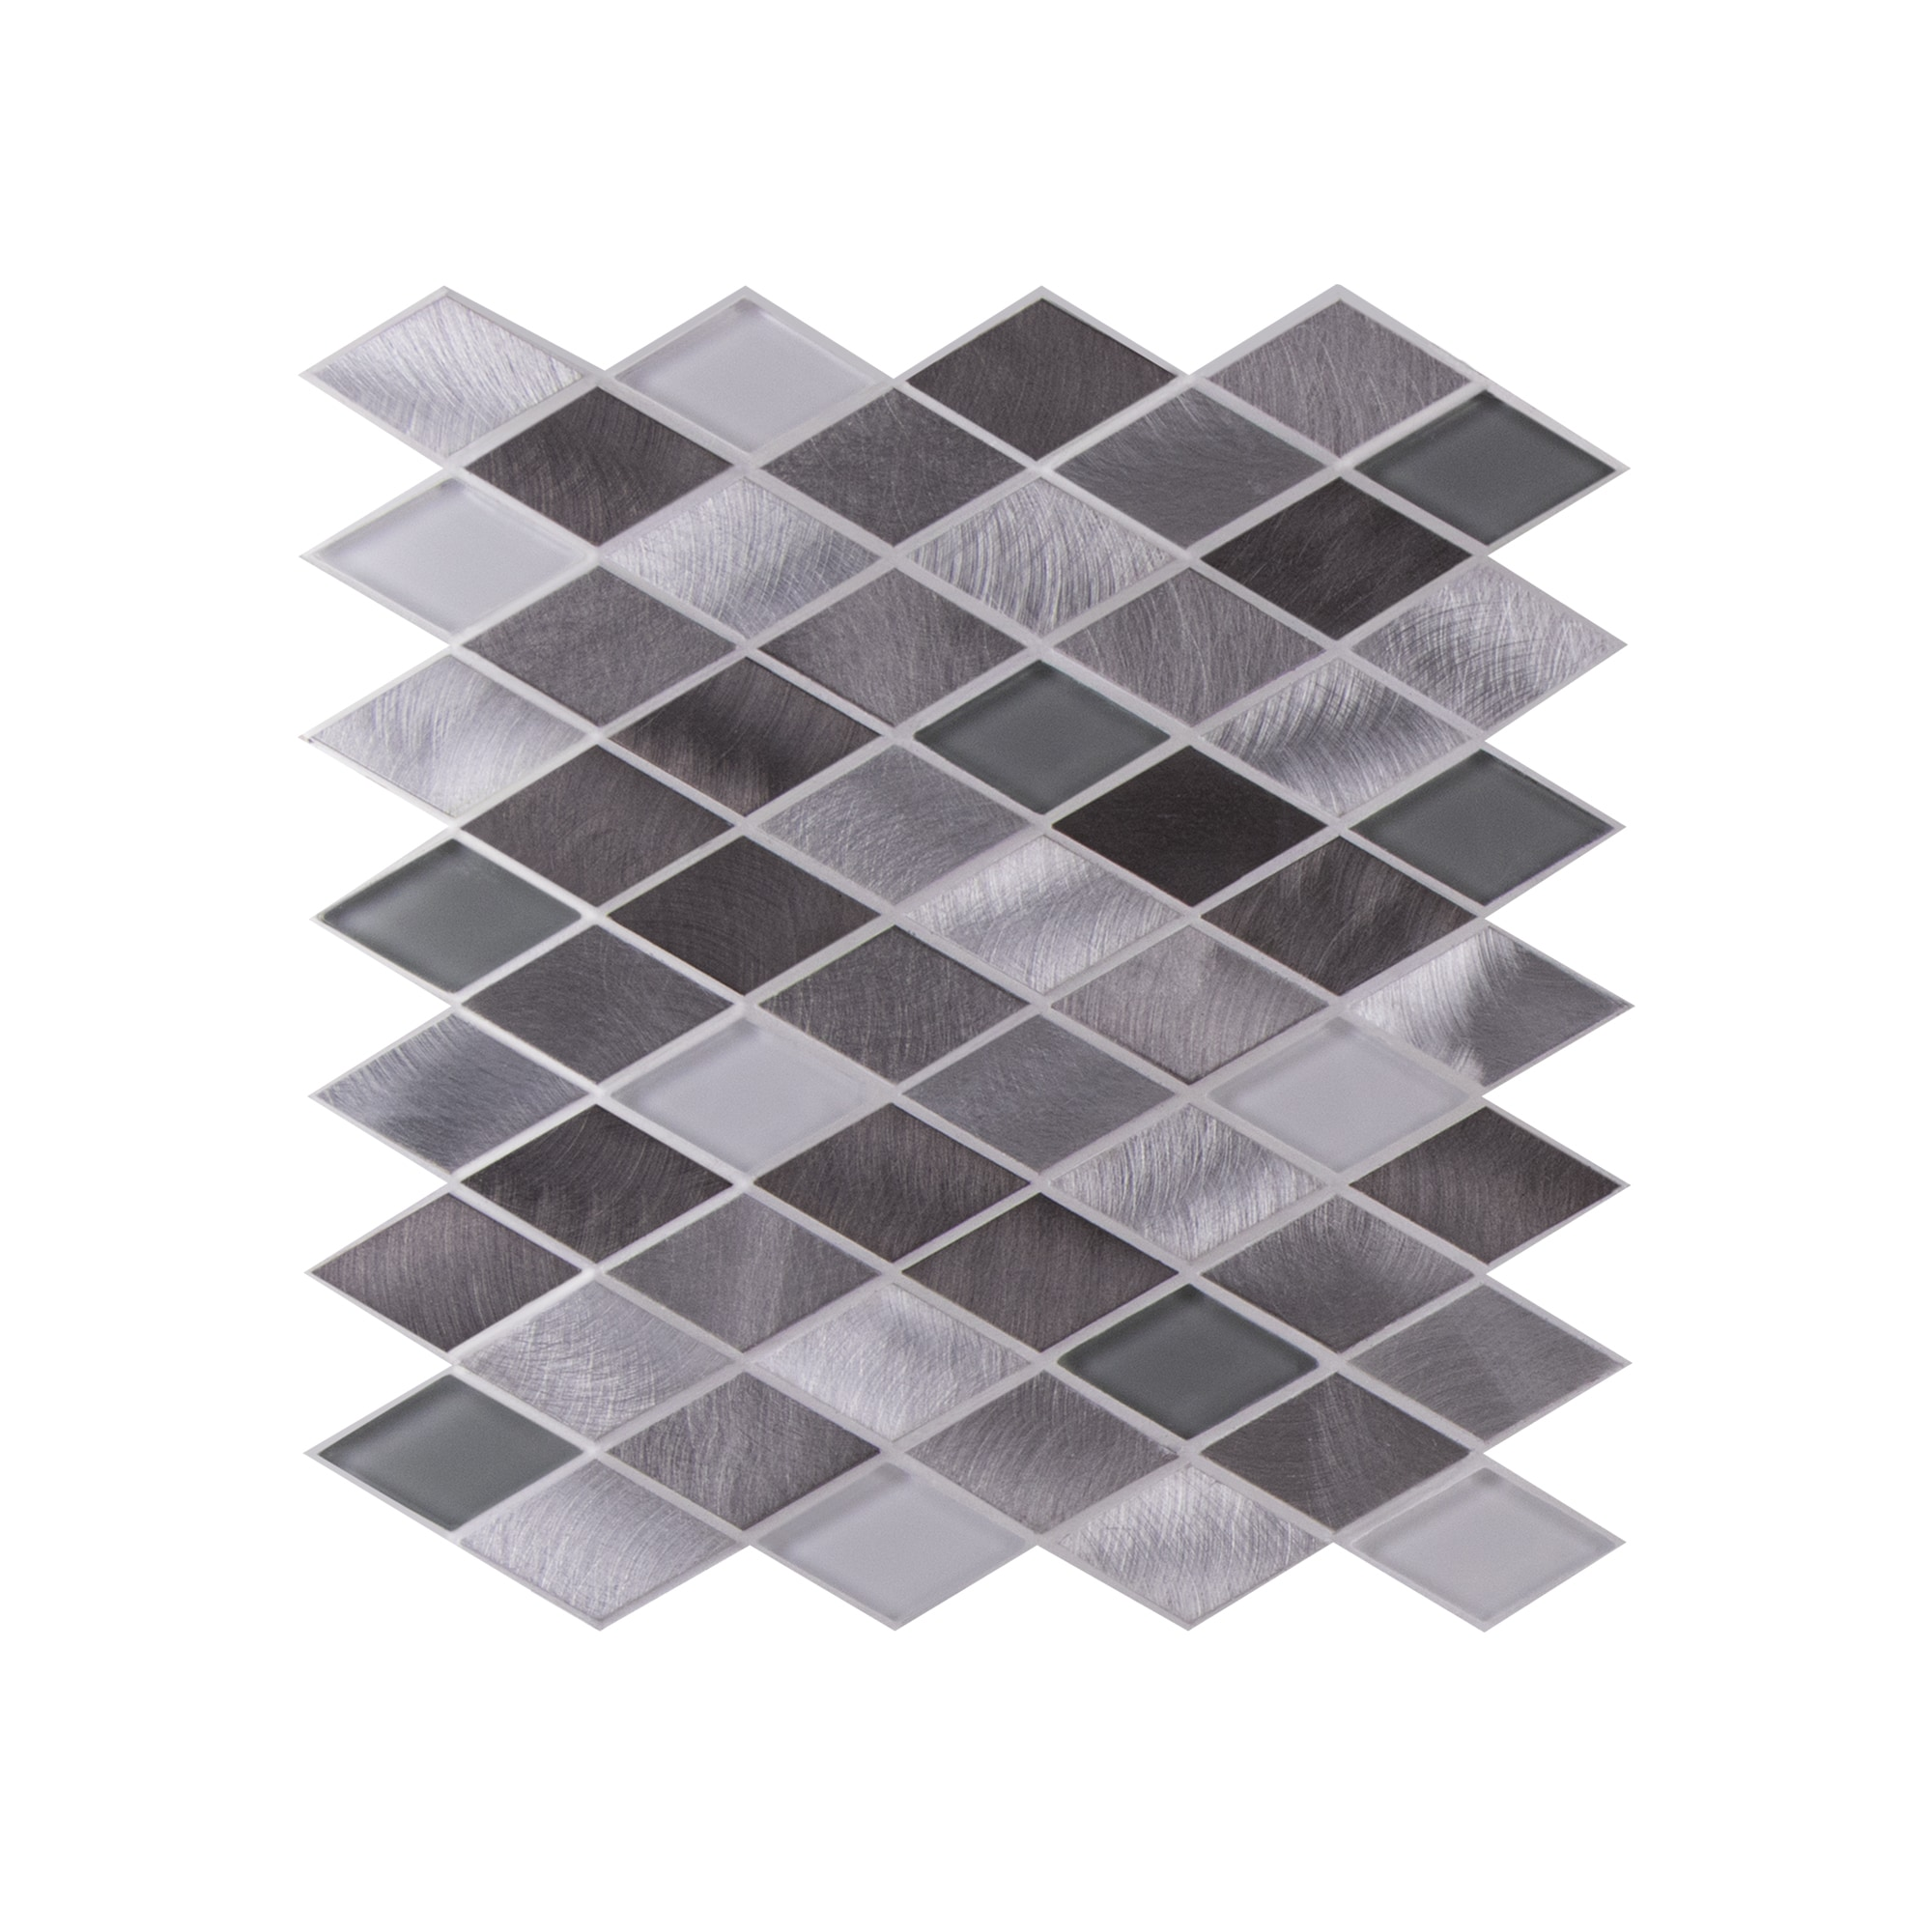 Glass Mosaic / 12 x 12 x 0.31 inches / Glossy Diamond Glass & Aluminum Mosaic Tile In Gray and White 0